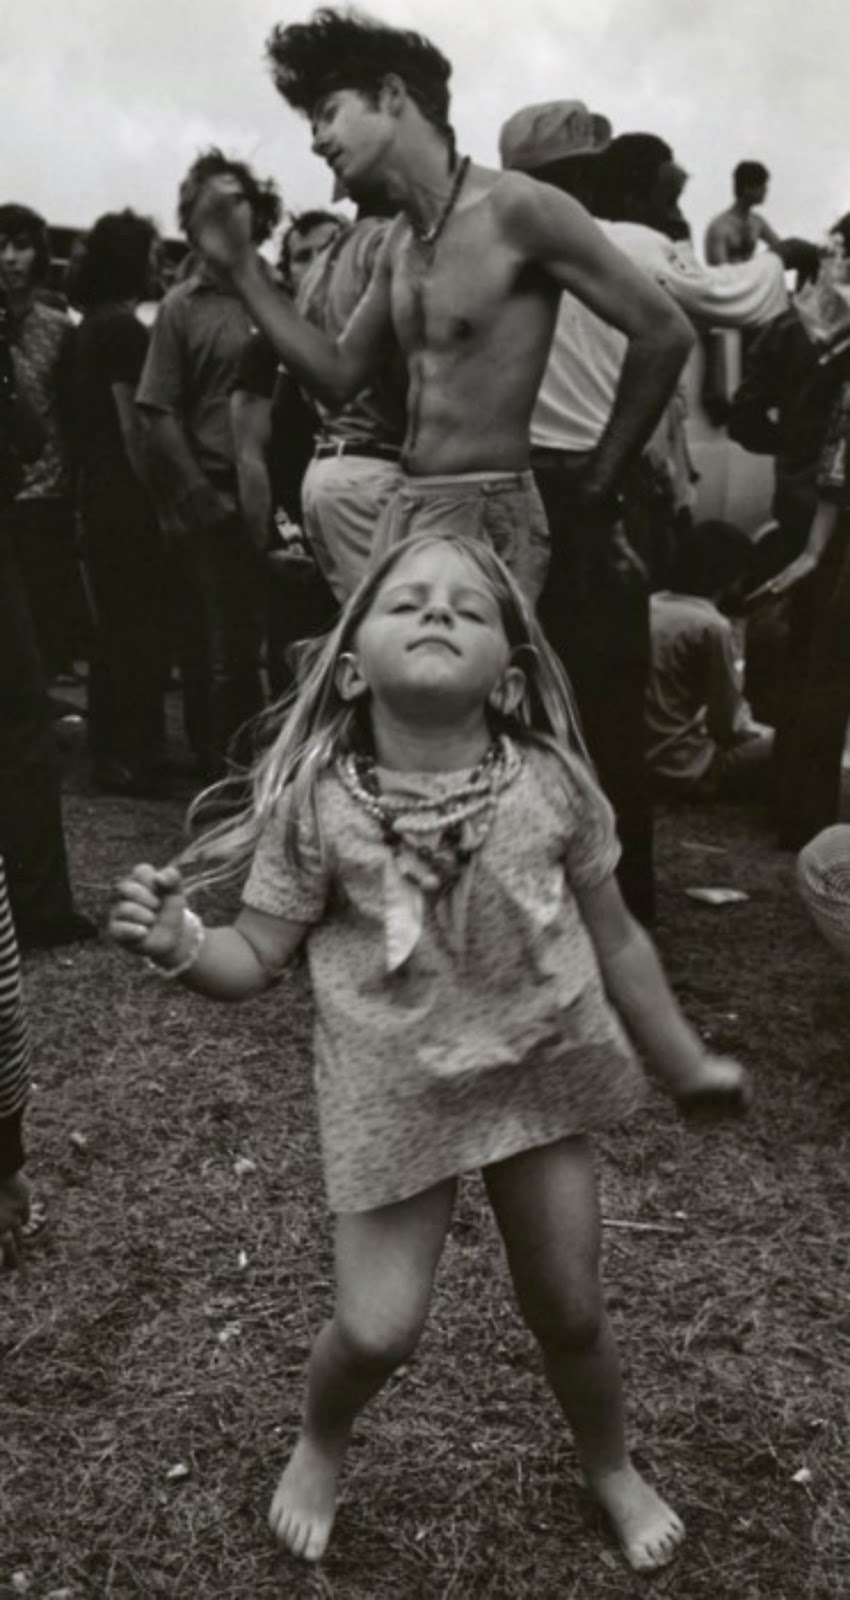 A young hippie girl dancing at a festival in new orleans louisiana 1972